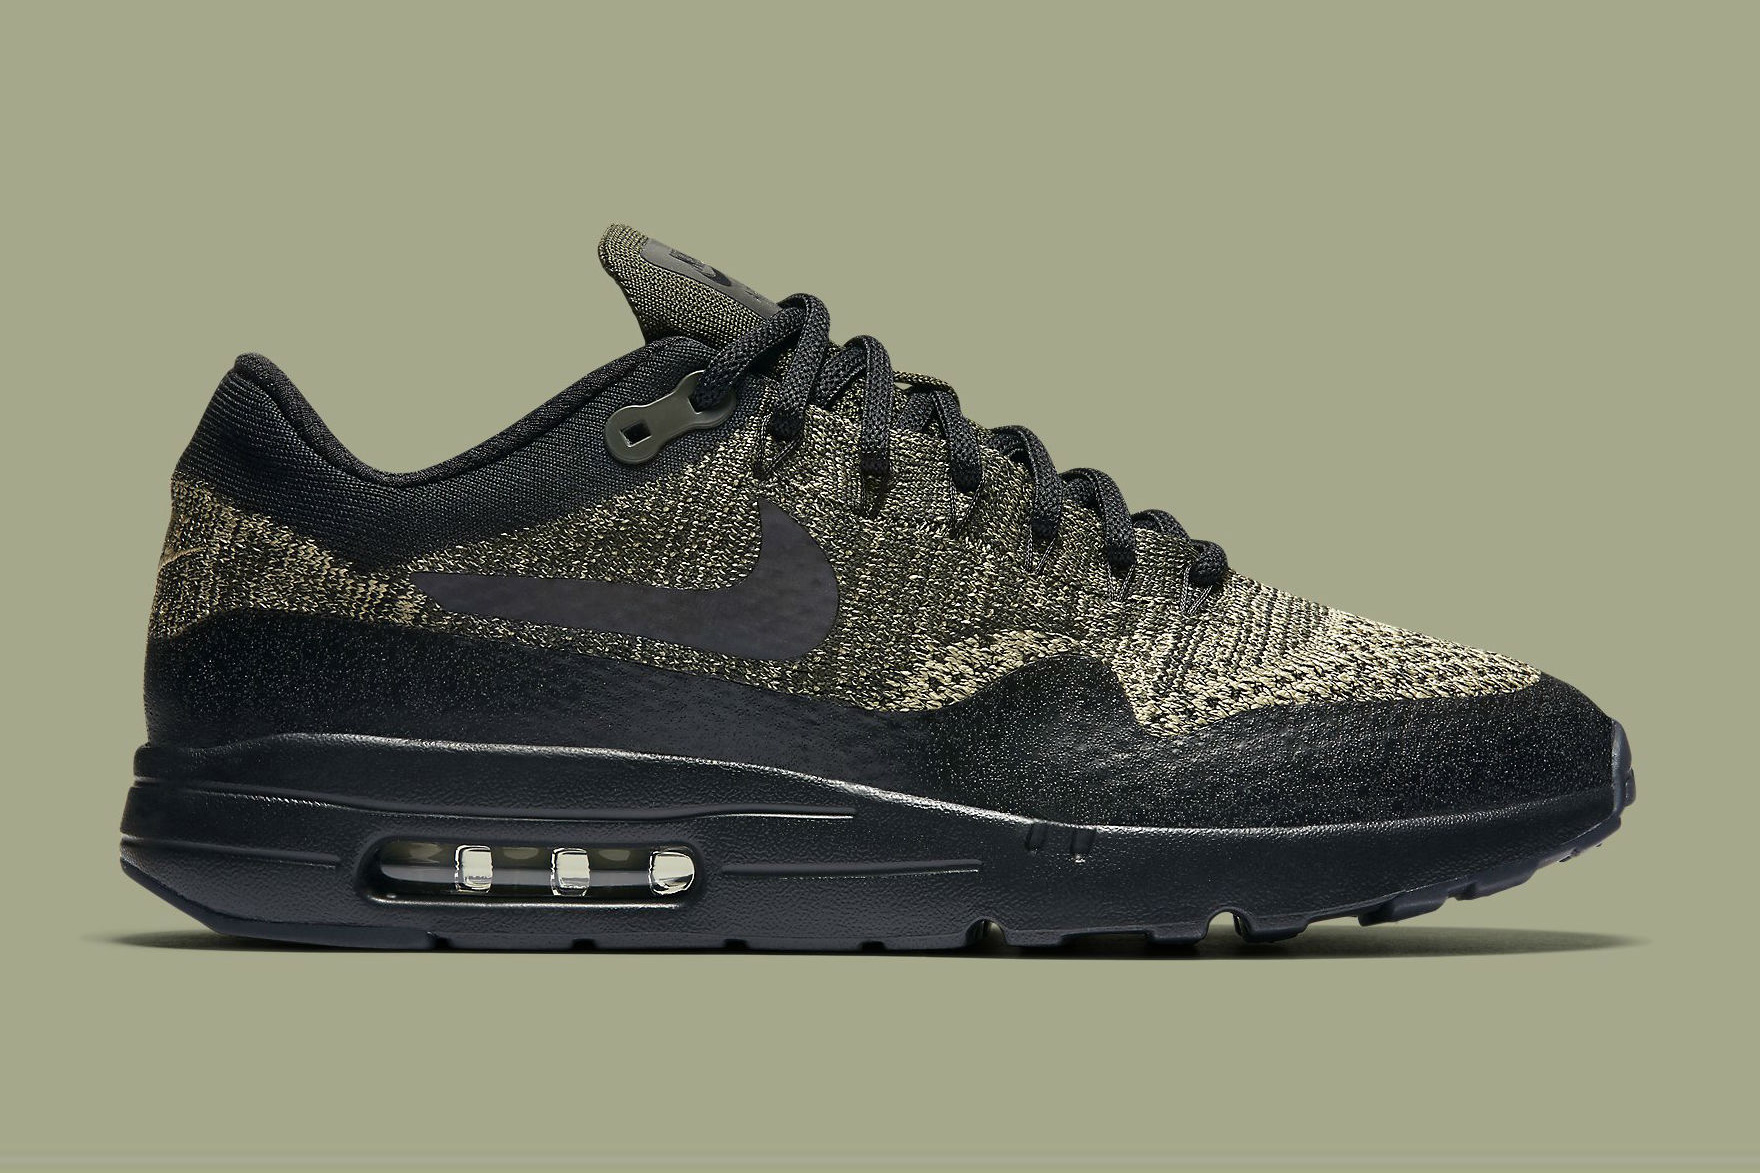 The Nike Air Max 1 Ultra Flyknit Gets the Olive Treatment